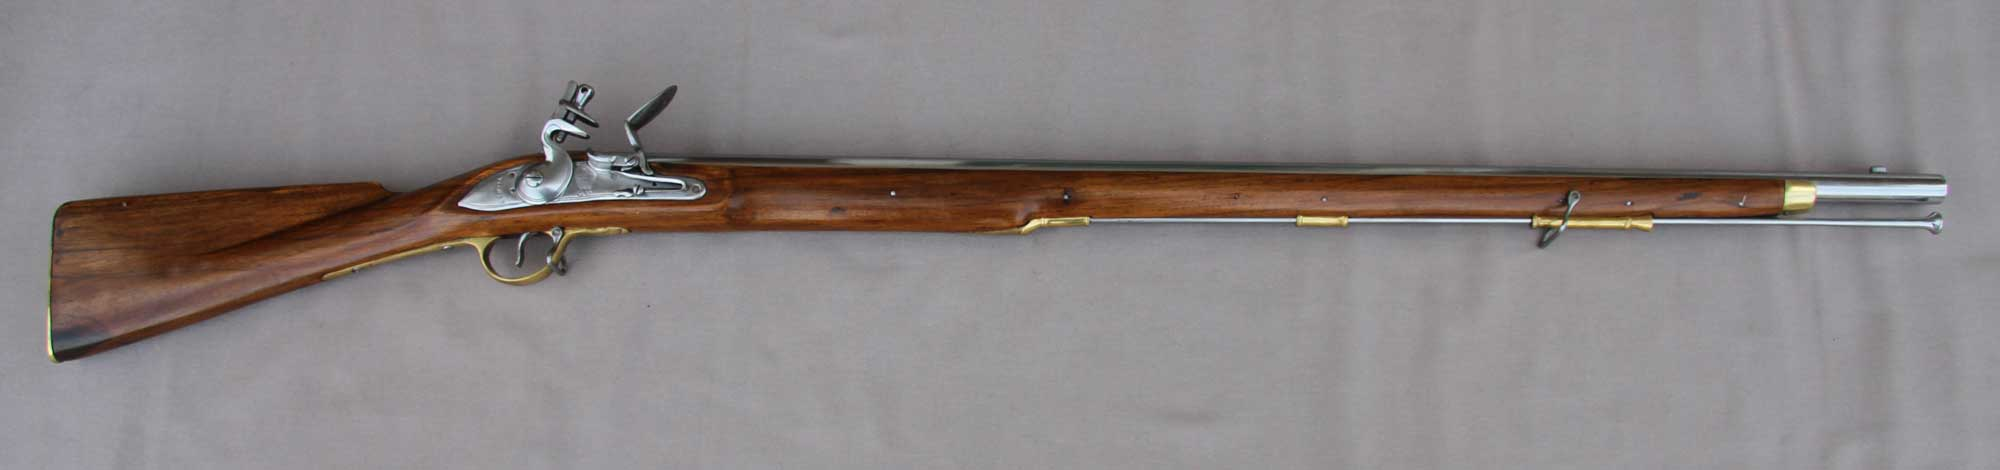 India pattern musket